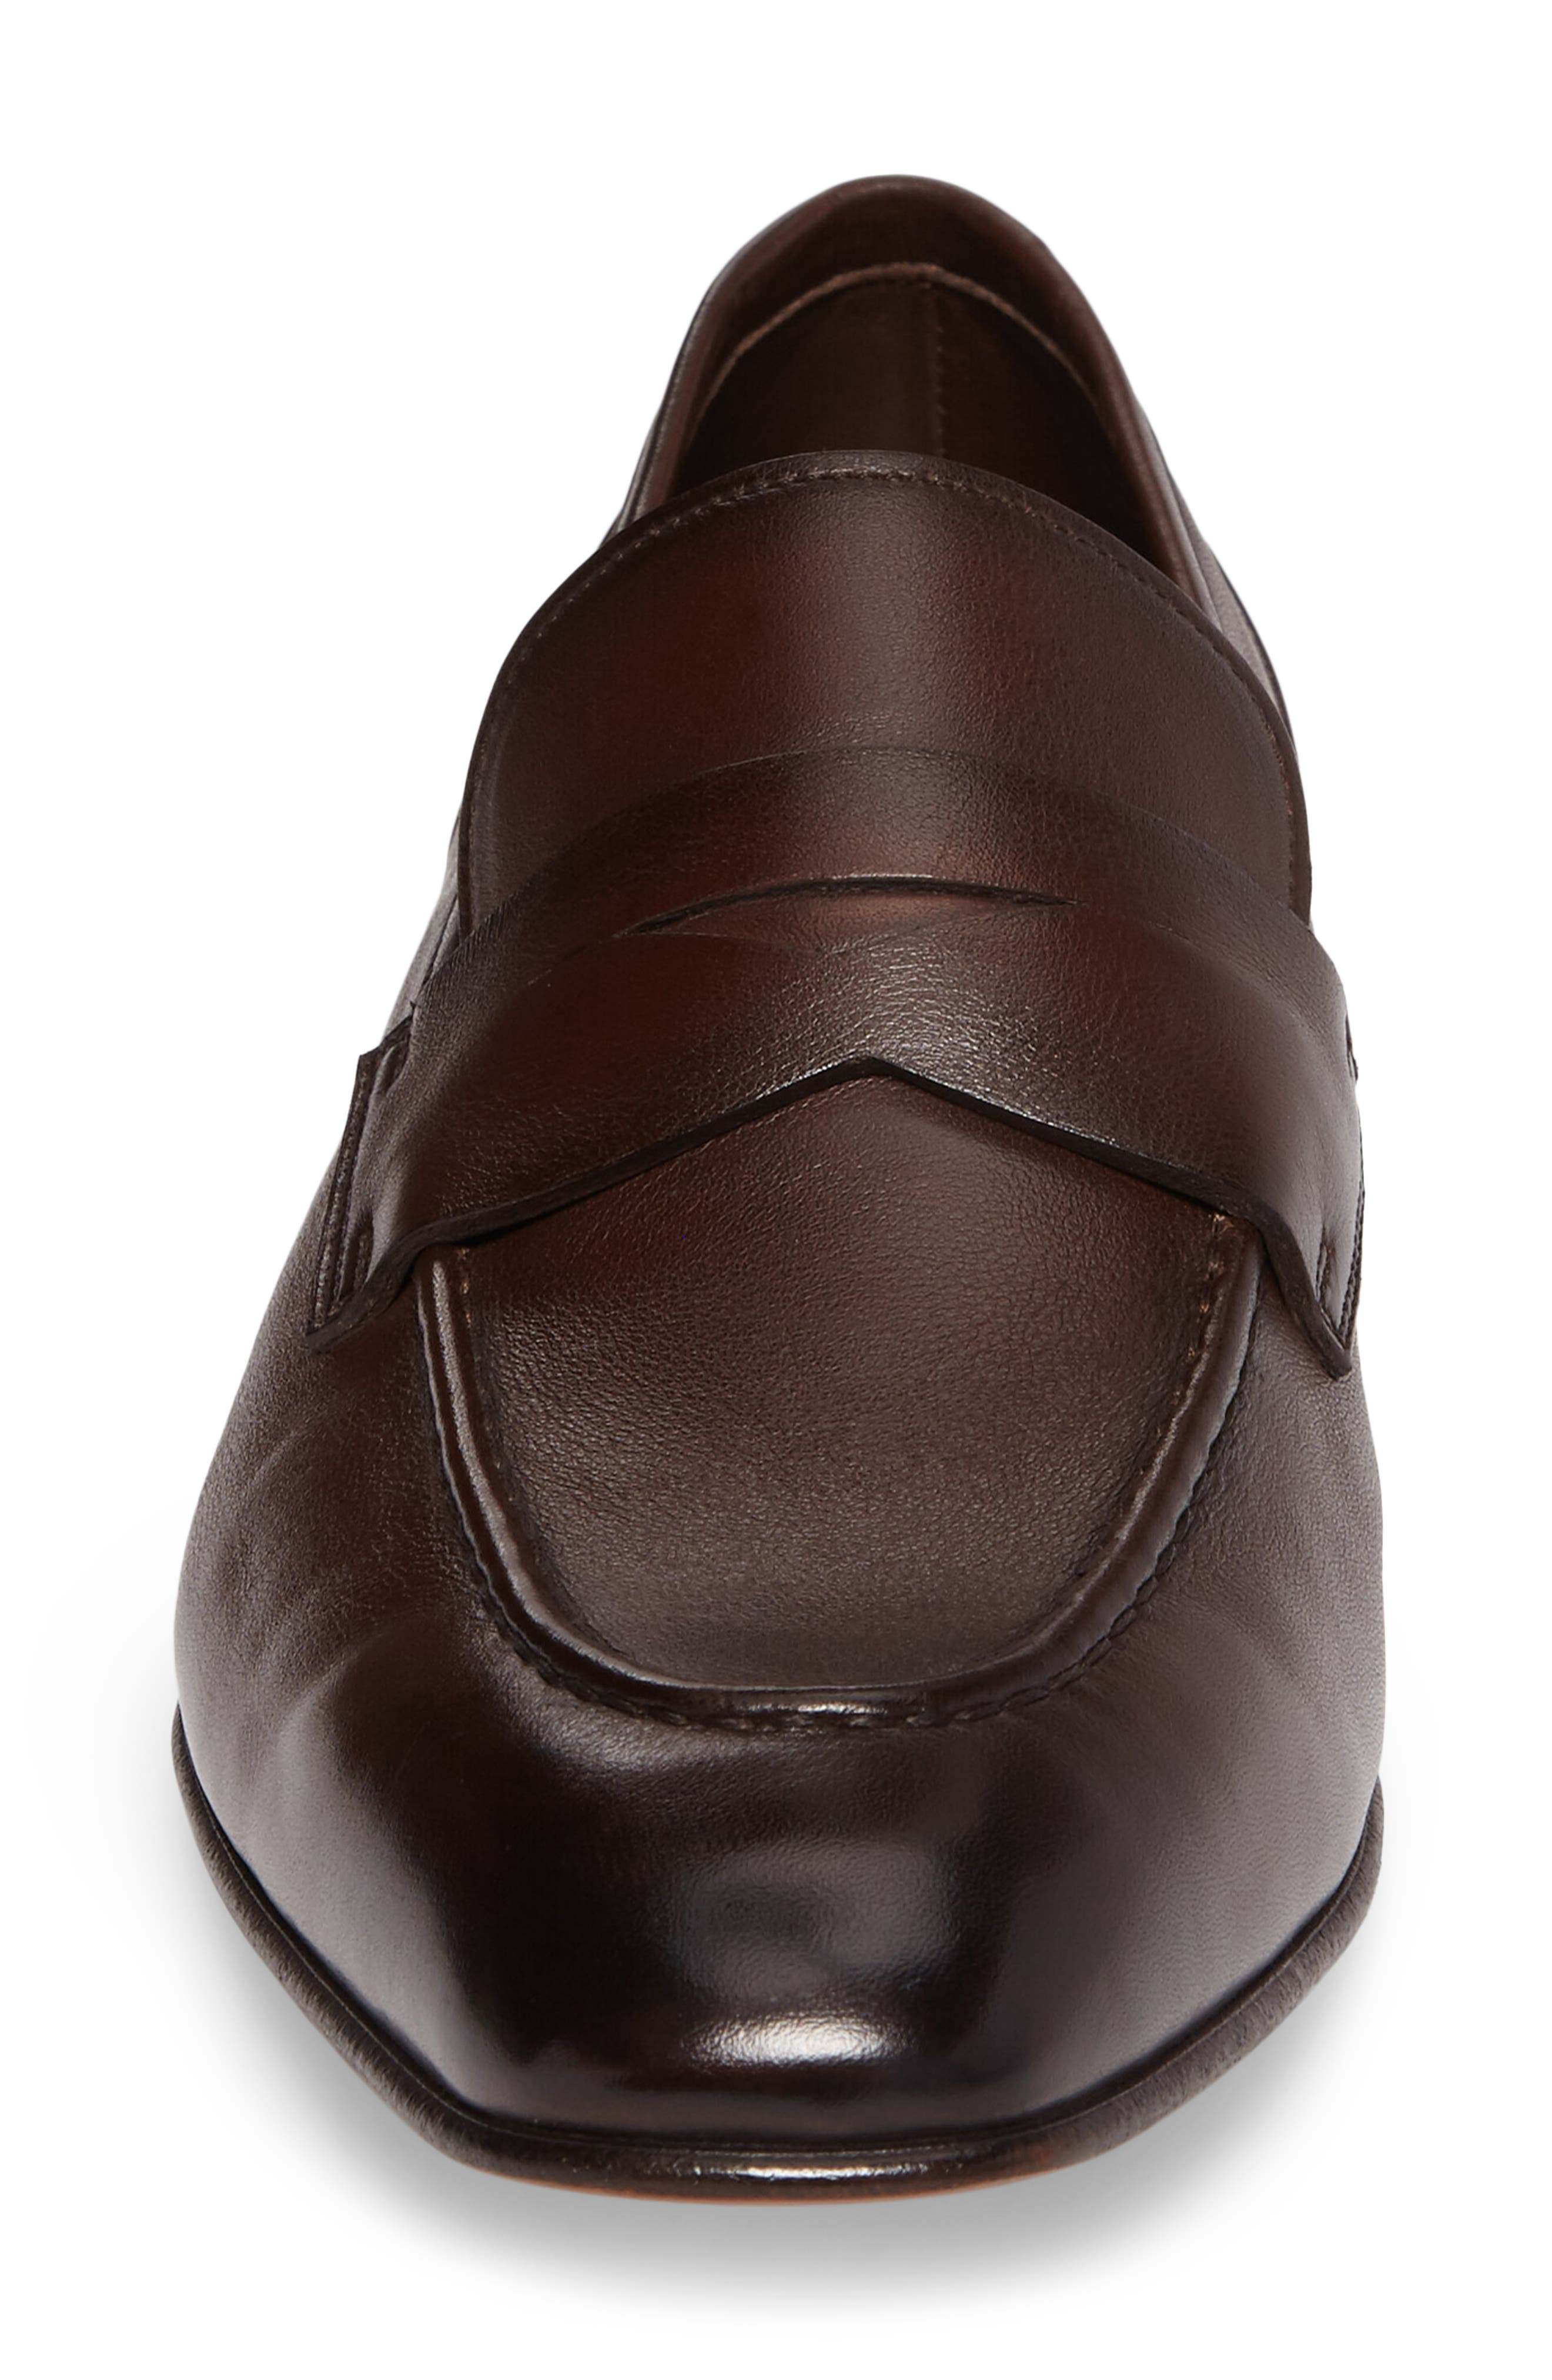 SANTONI, Gannon Penny Loafer, Alternate thumbnail 4, color, BROWN